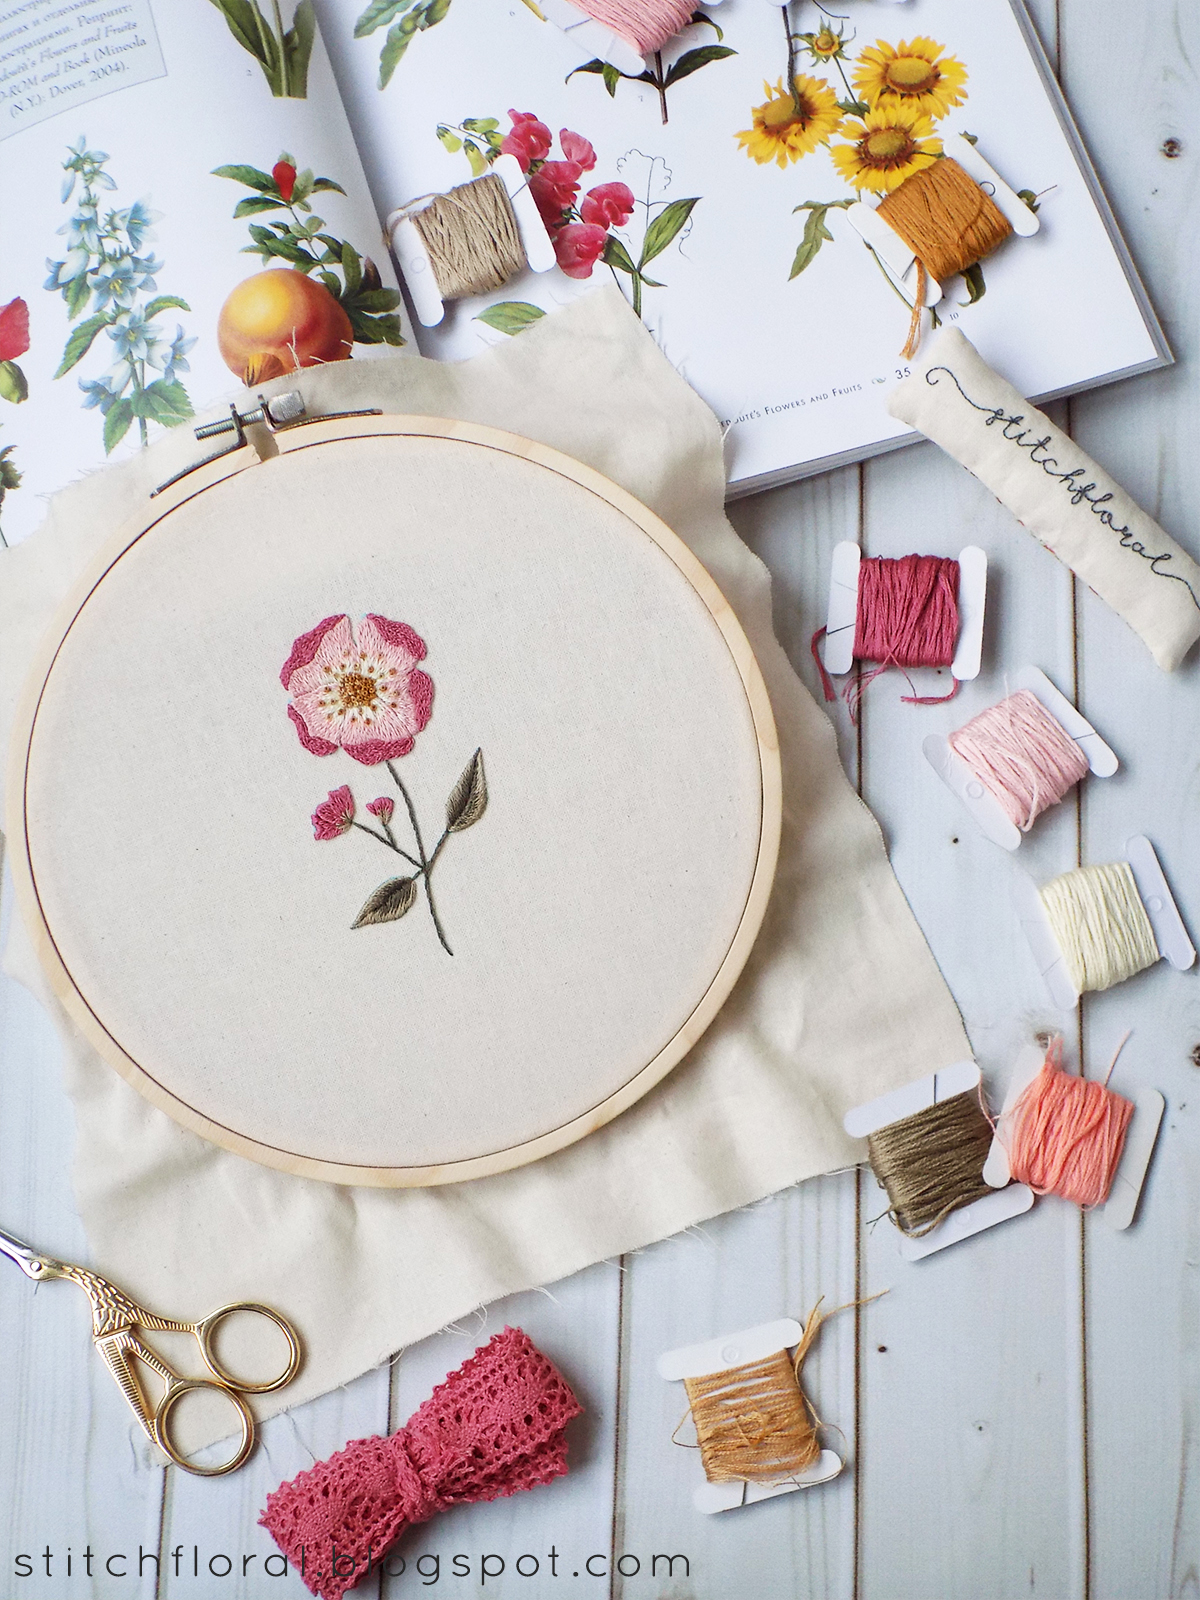 8 Spring And Summer Hand Embroidery Projects Stitch Floral